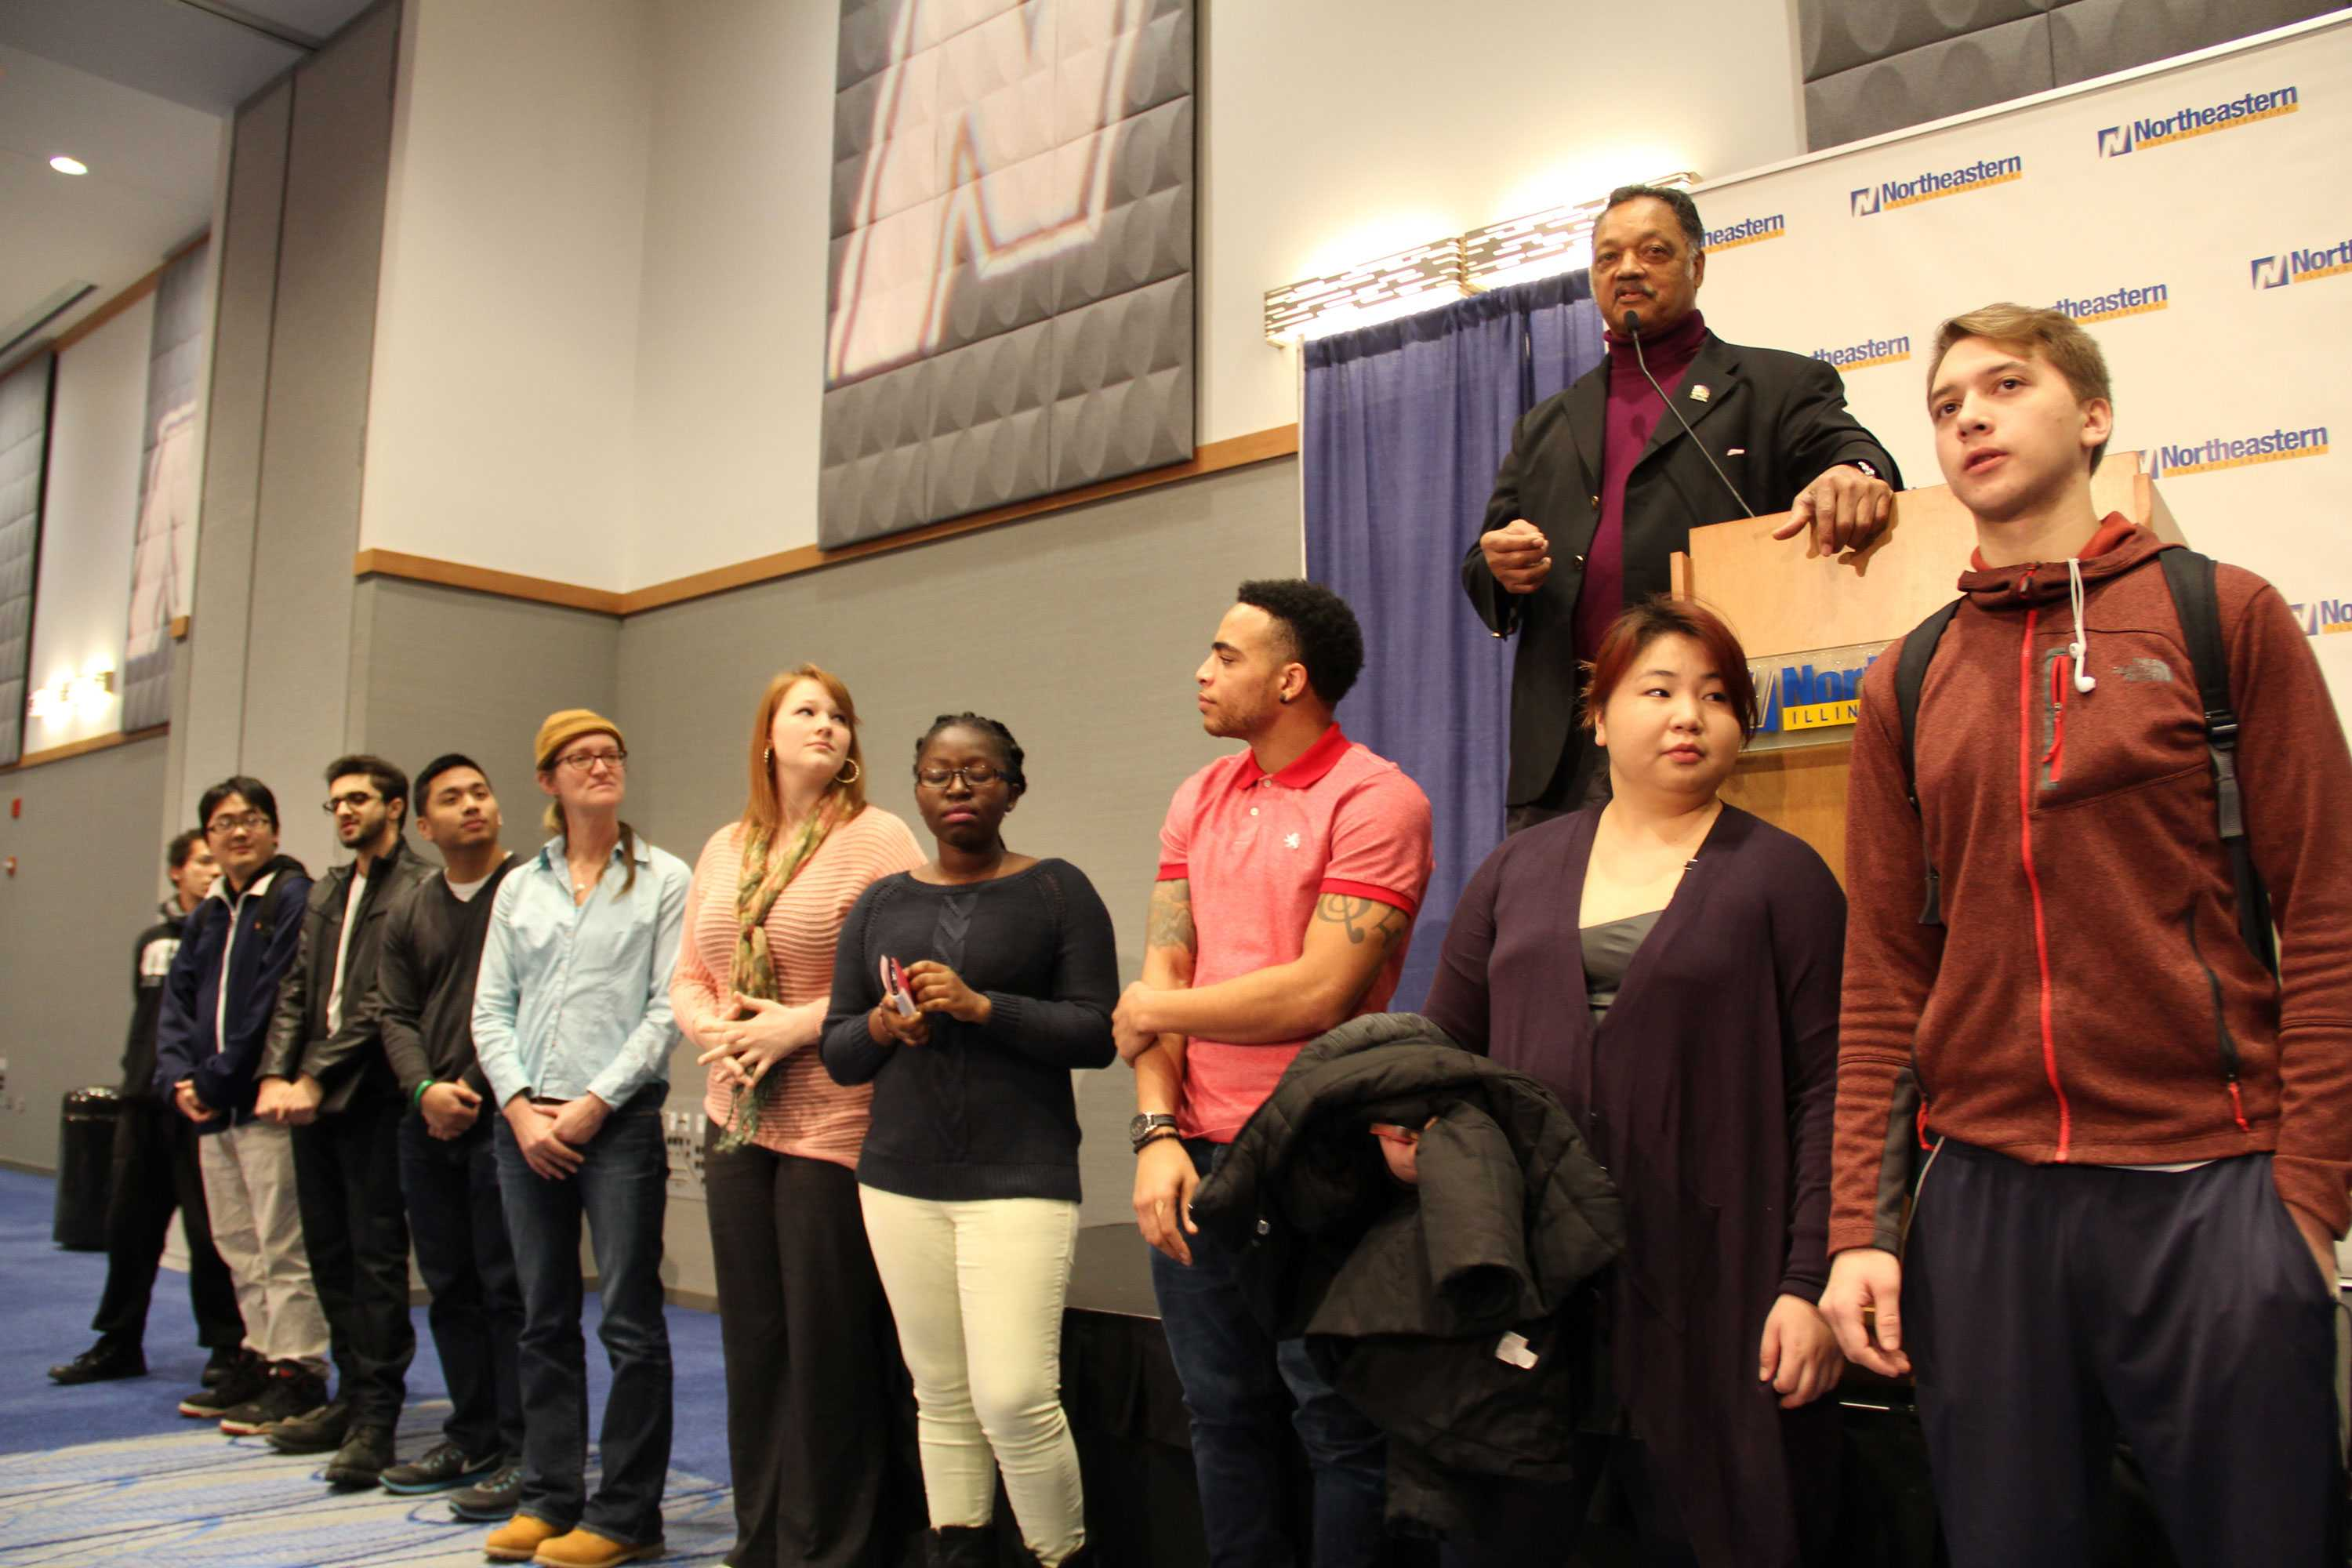 Jesse Jackson, Sr. encouraged unregistered voters to come to the stage and become registered. Ten students answered the call during his speech at Alumni Hall.